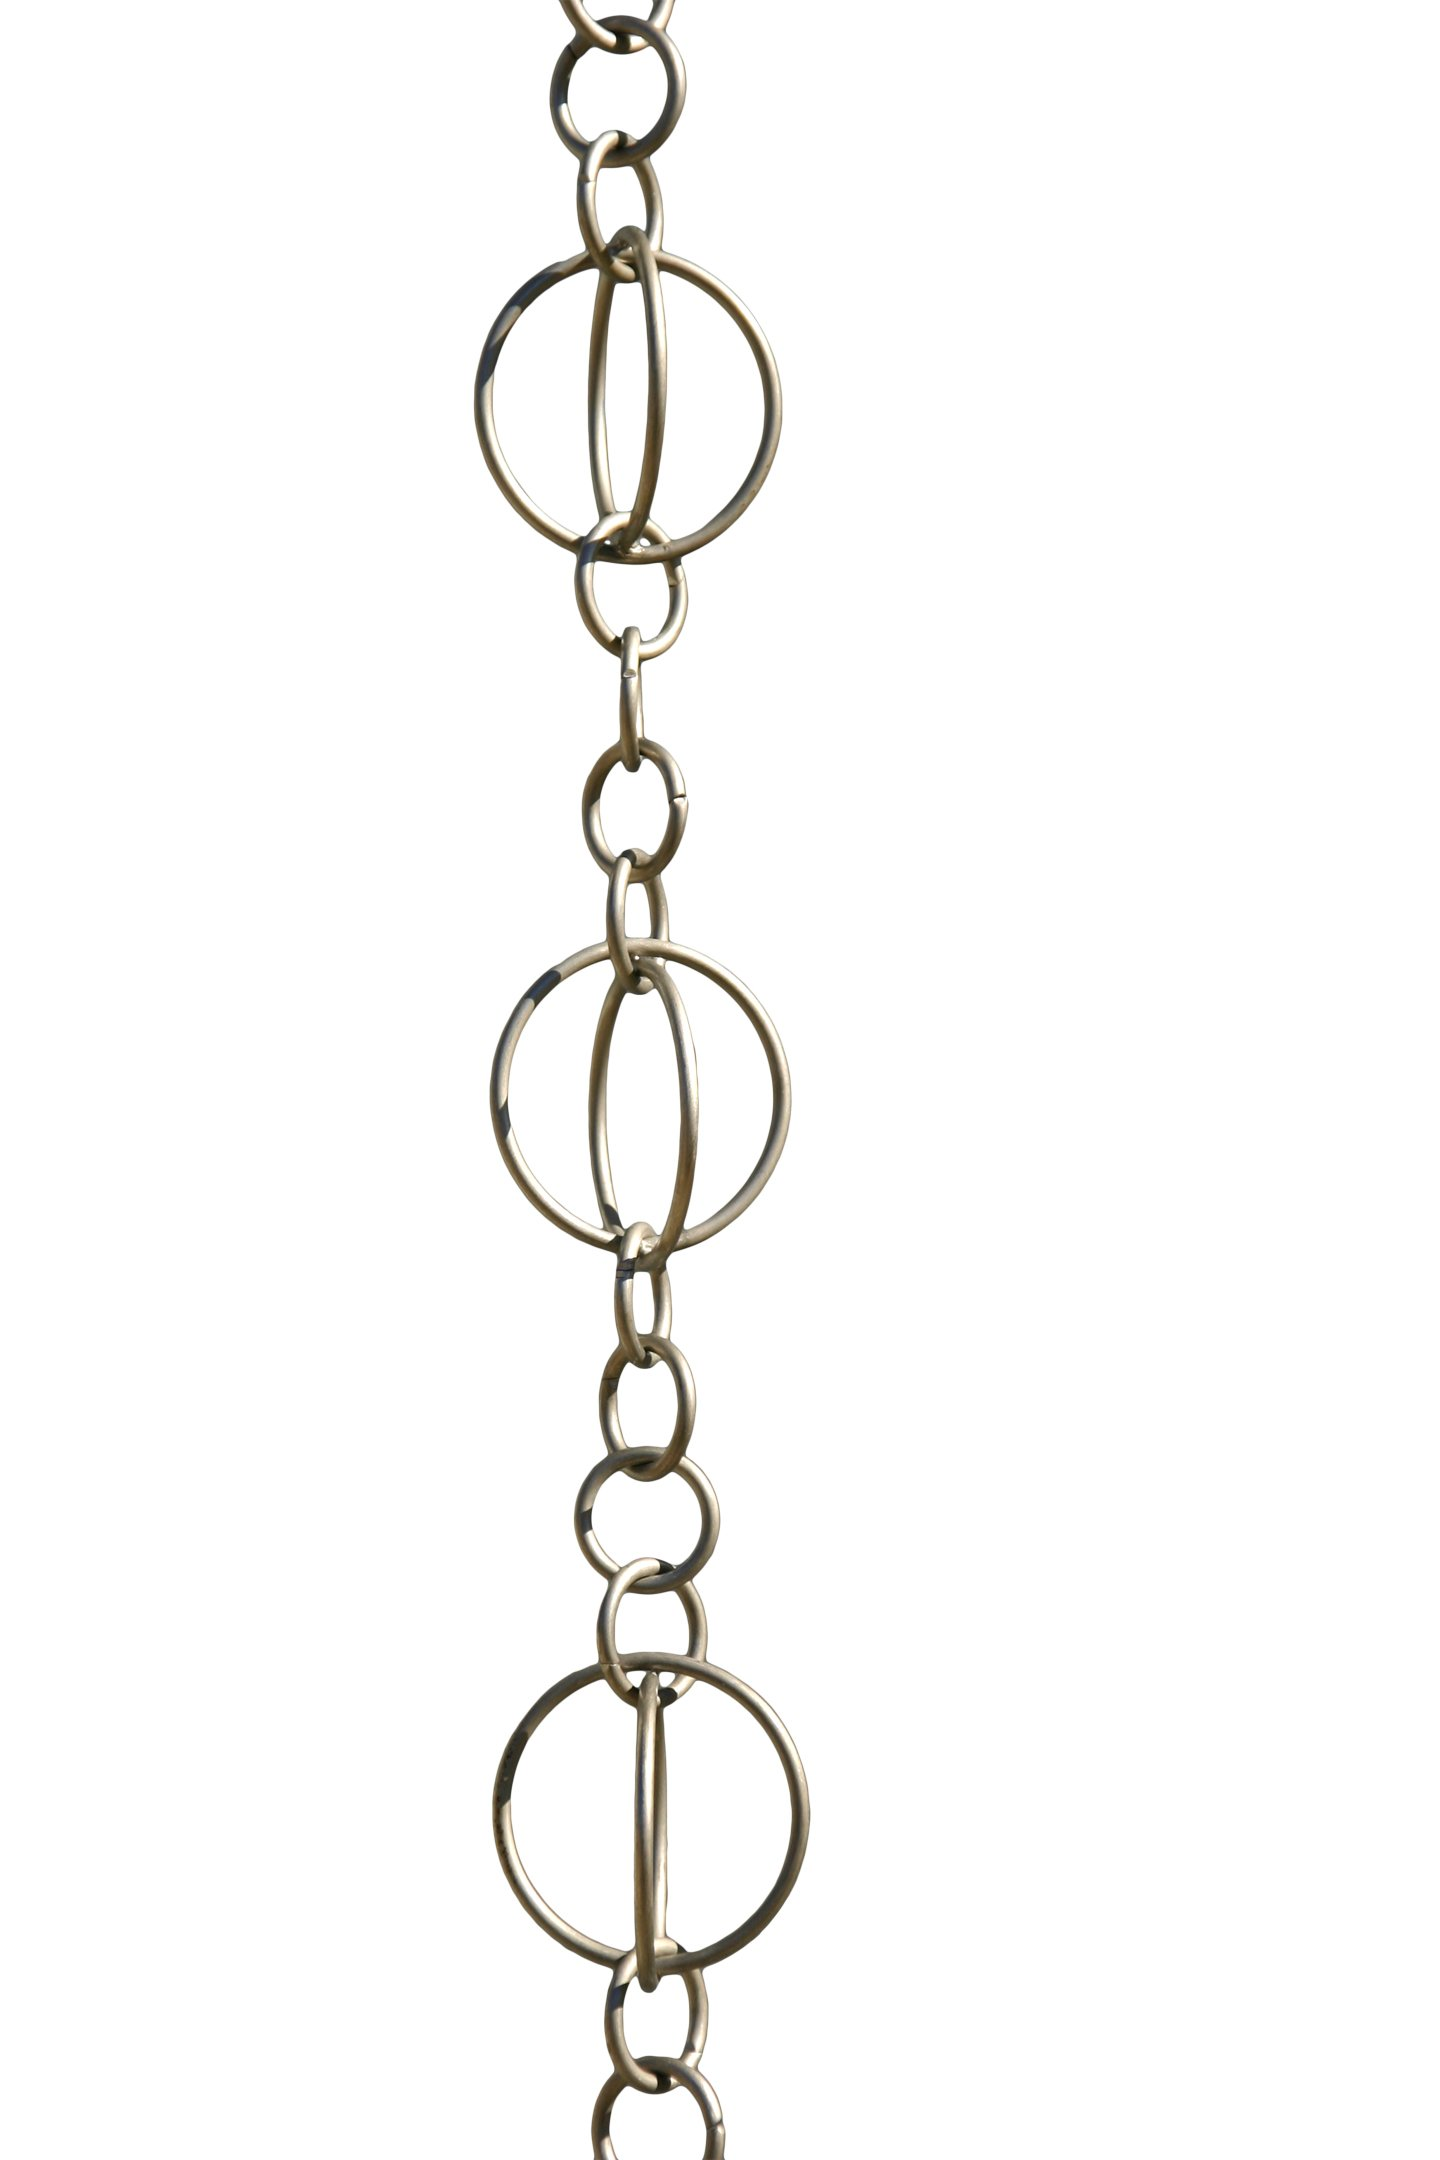 Patina Products R263  Brushed Stainless Life Circles Rain Chain Full Length